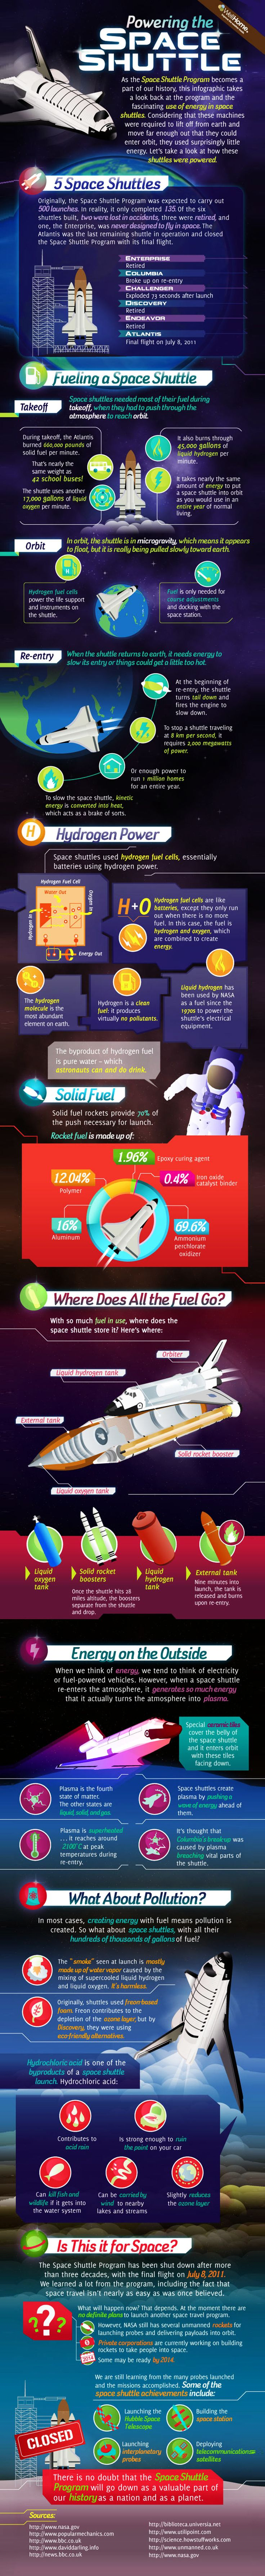 Powering the Space Shuttle Infographic. Topic: NASA, spaceship, ISS, universe, planet, moon, science, cosmology.